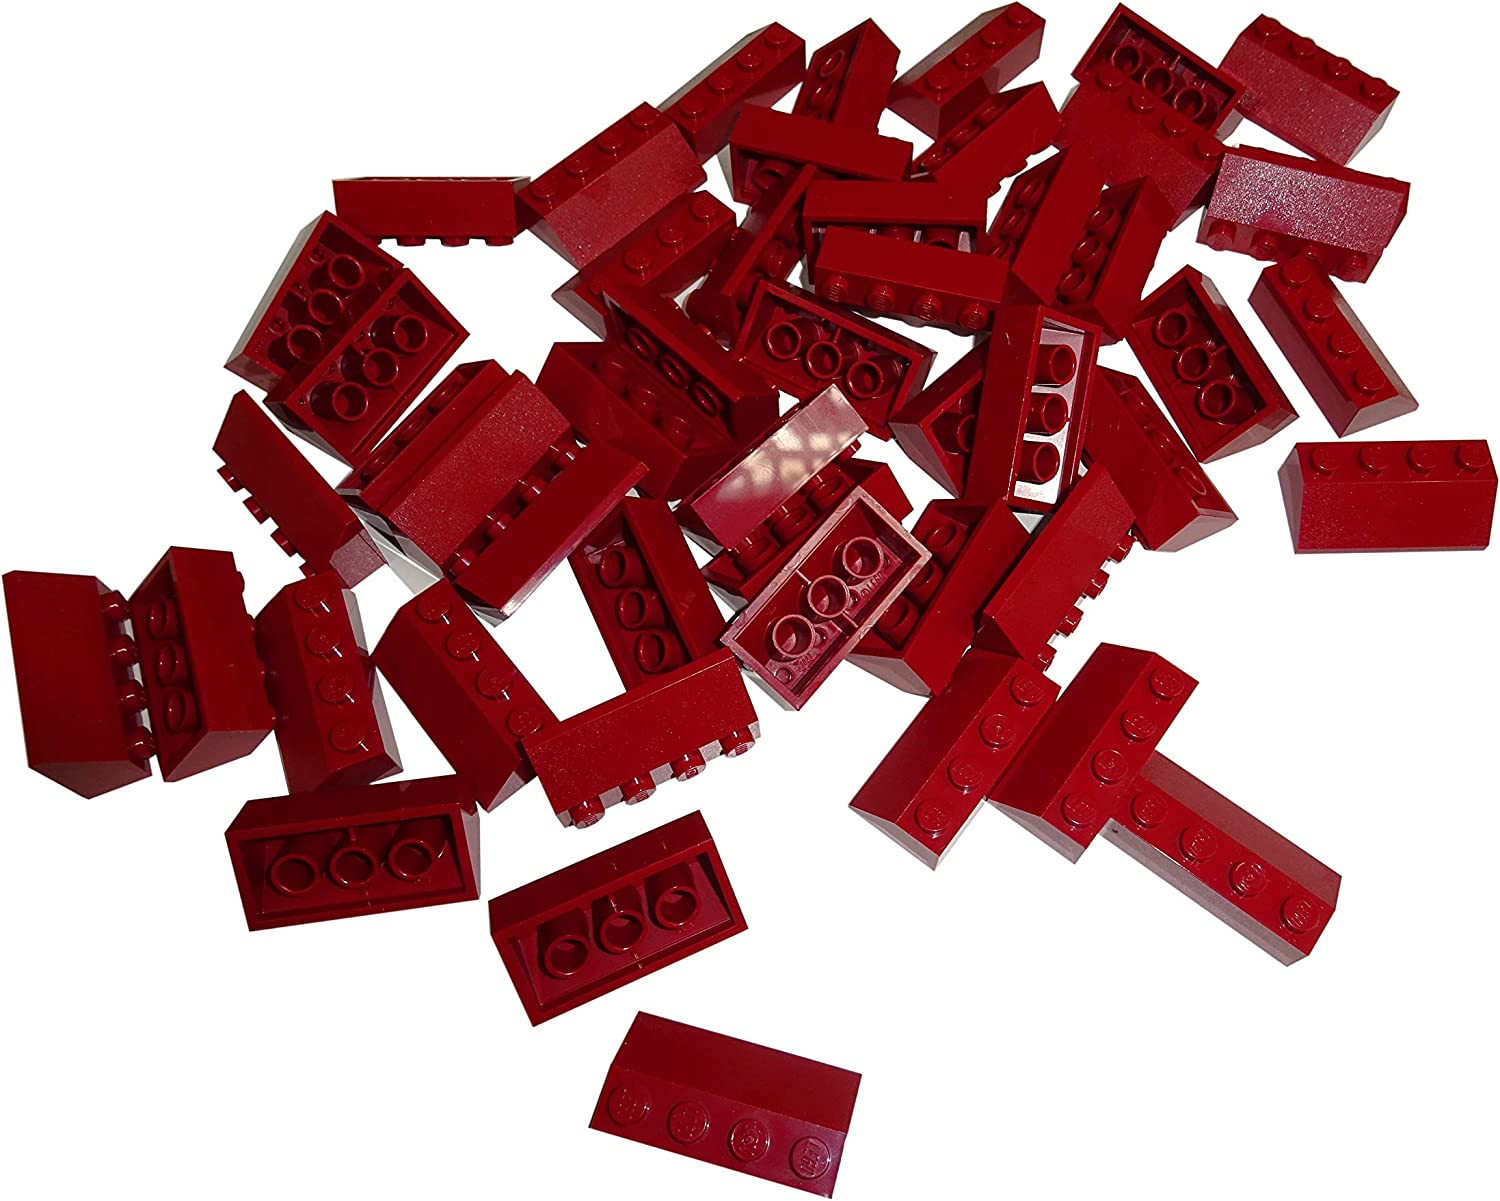 LEGO Parts and Pieces: Dark Red 2x4 45 Slope x50